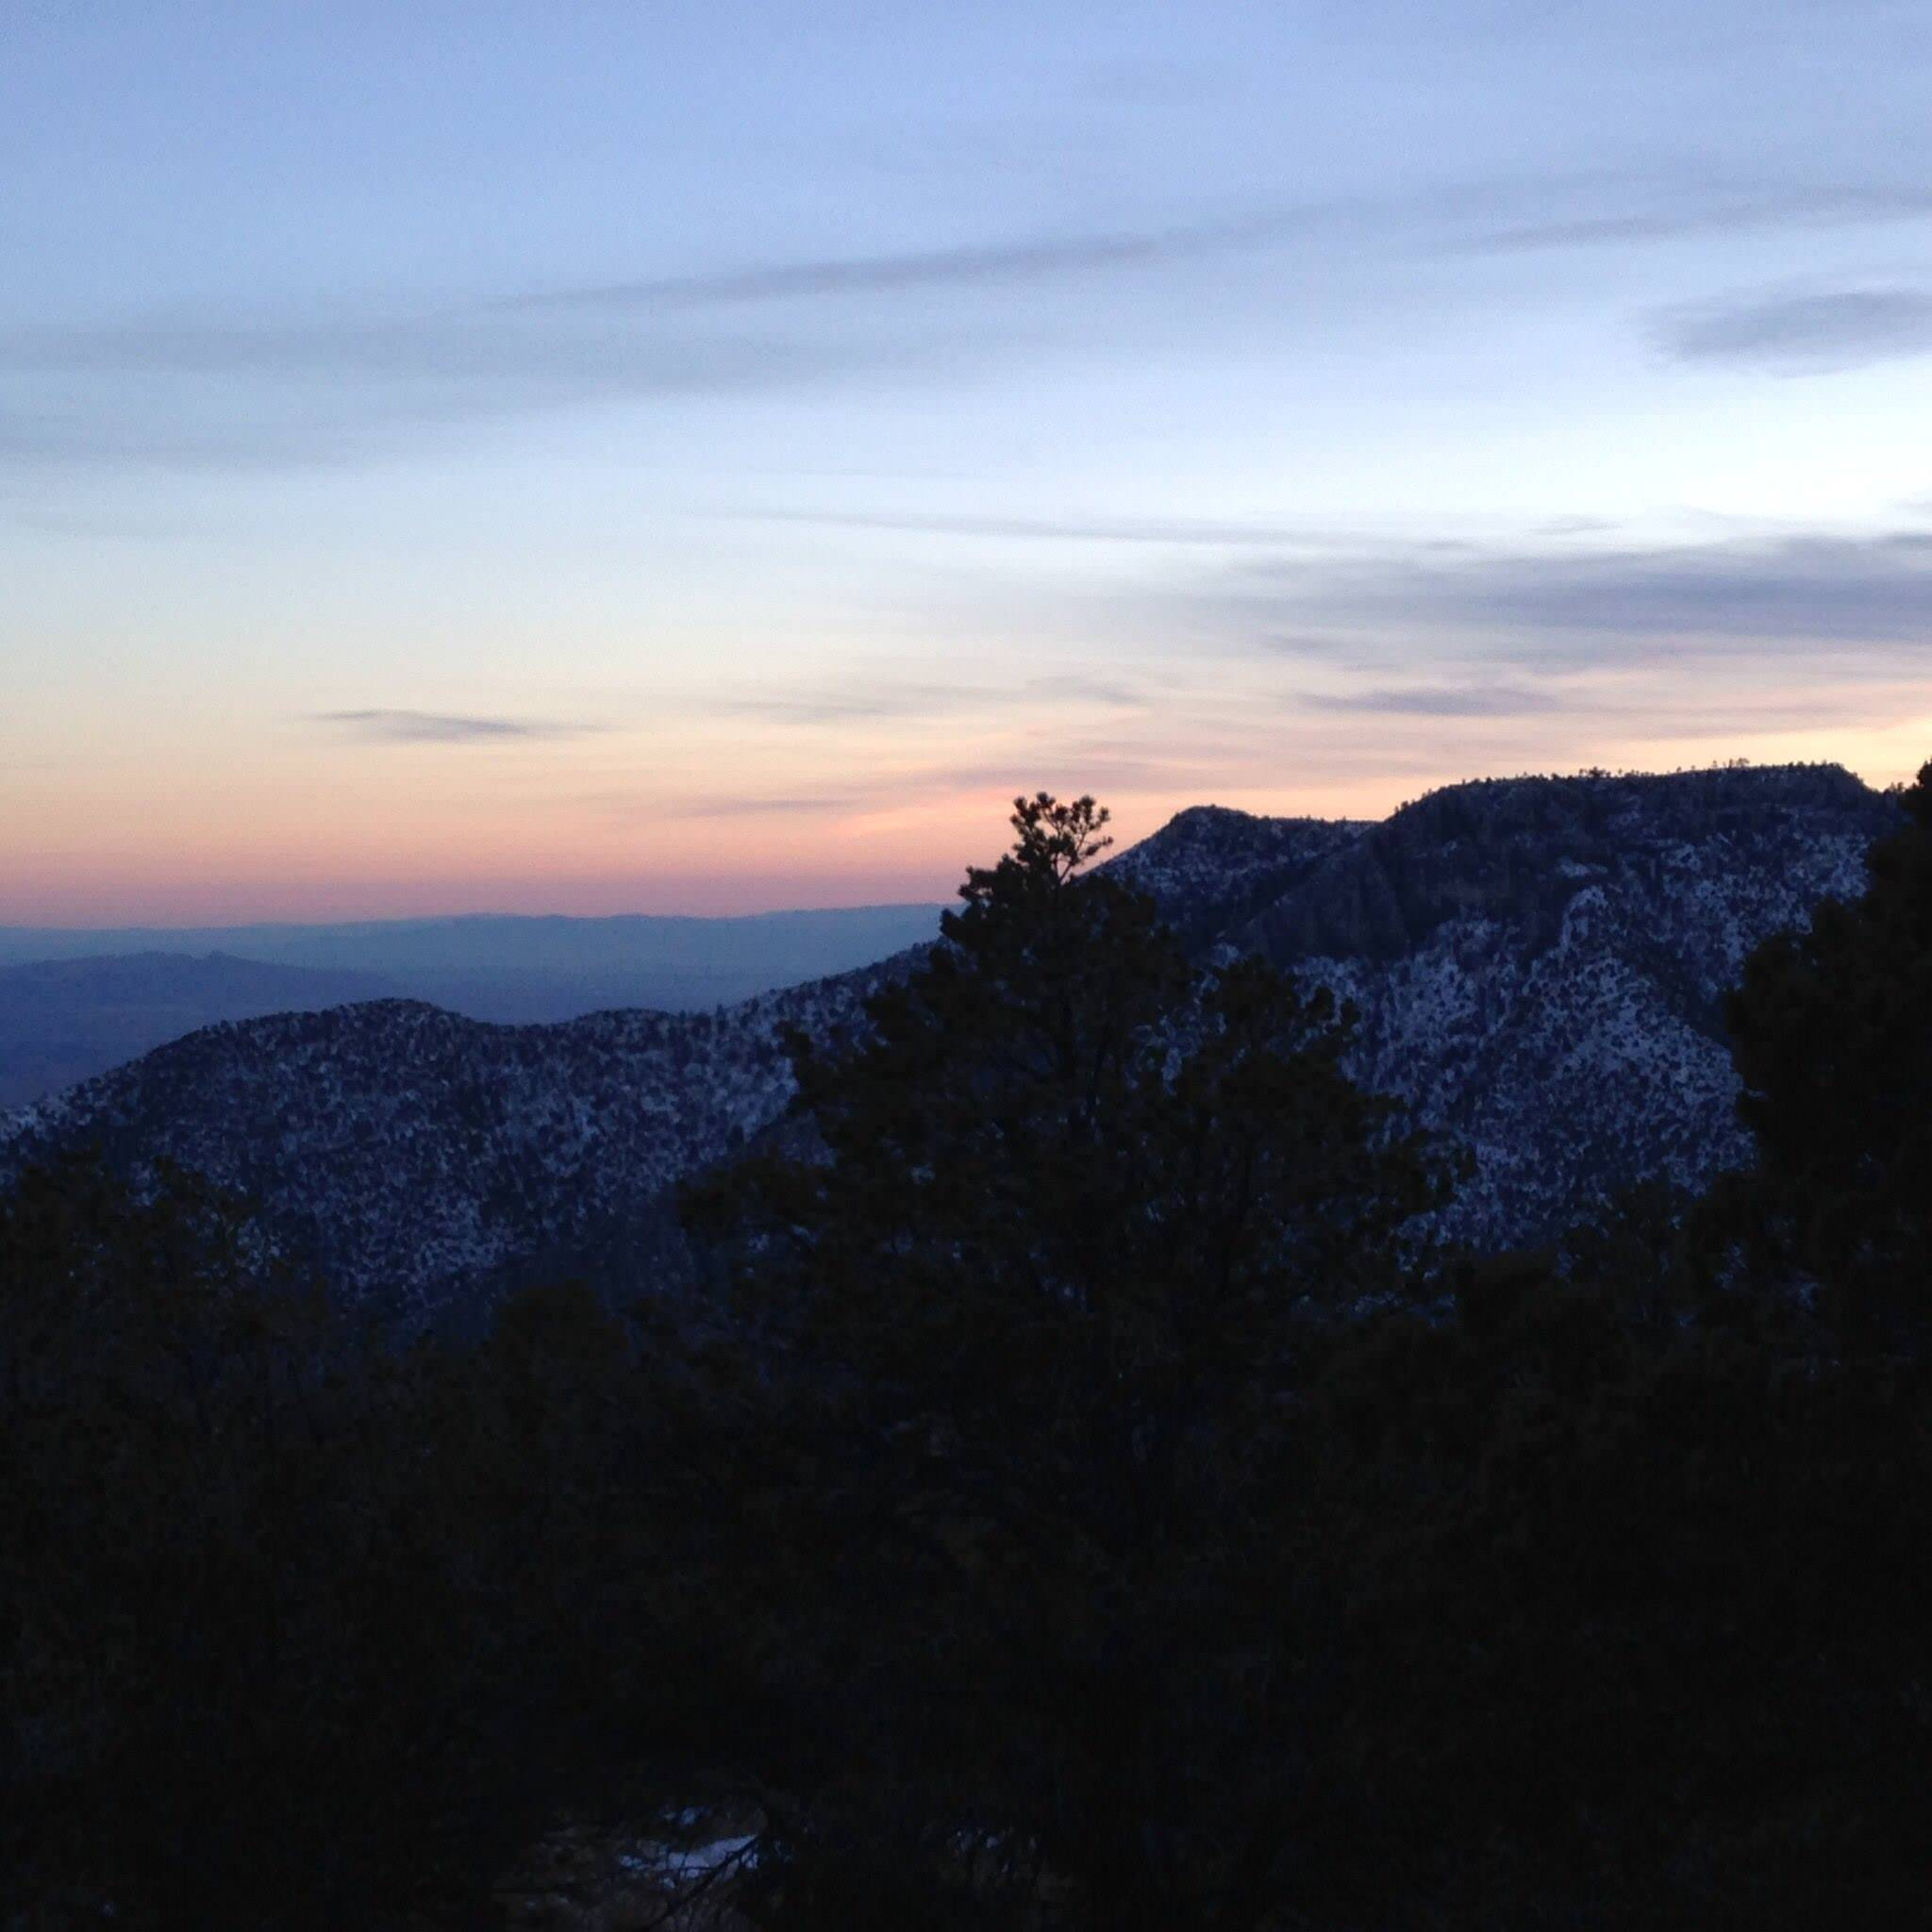 Sunset view from Pine Top campground